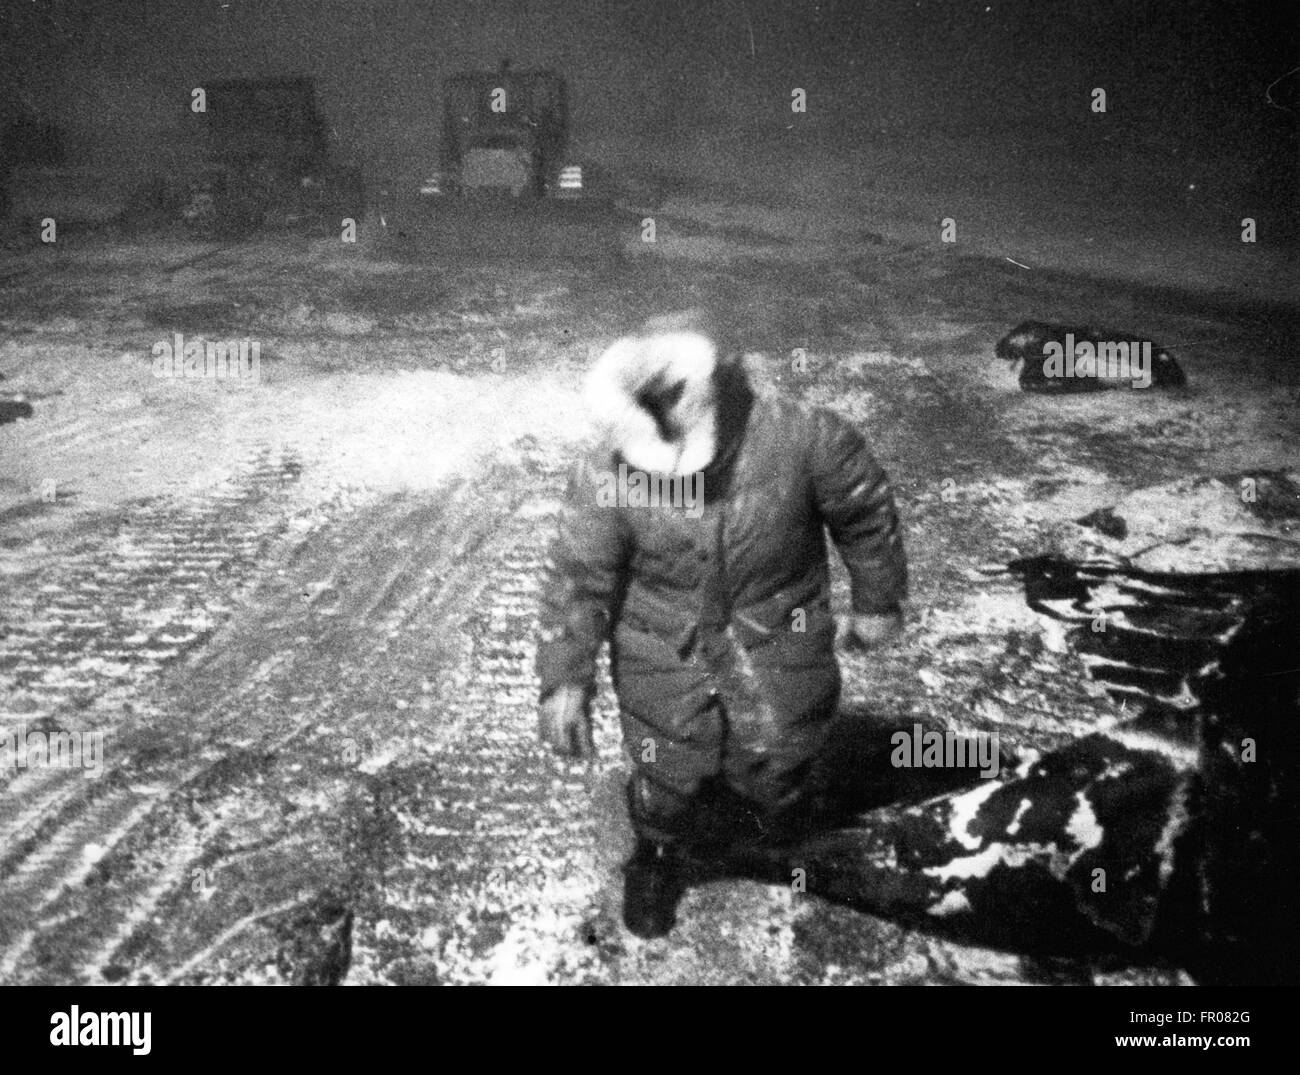 1962 - A member of the transport team returns after refueling a vehicle in a blizzard at a camp near Put River, Stock Photo